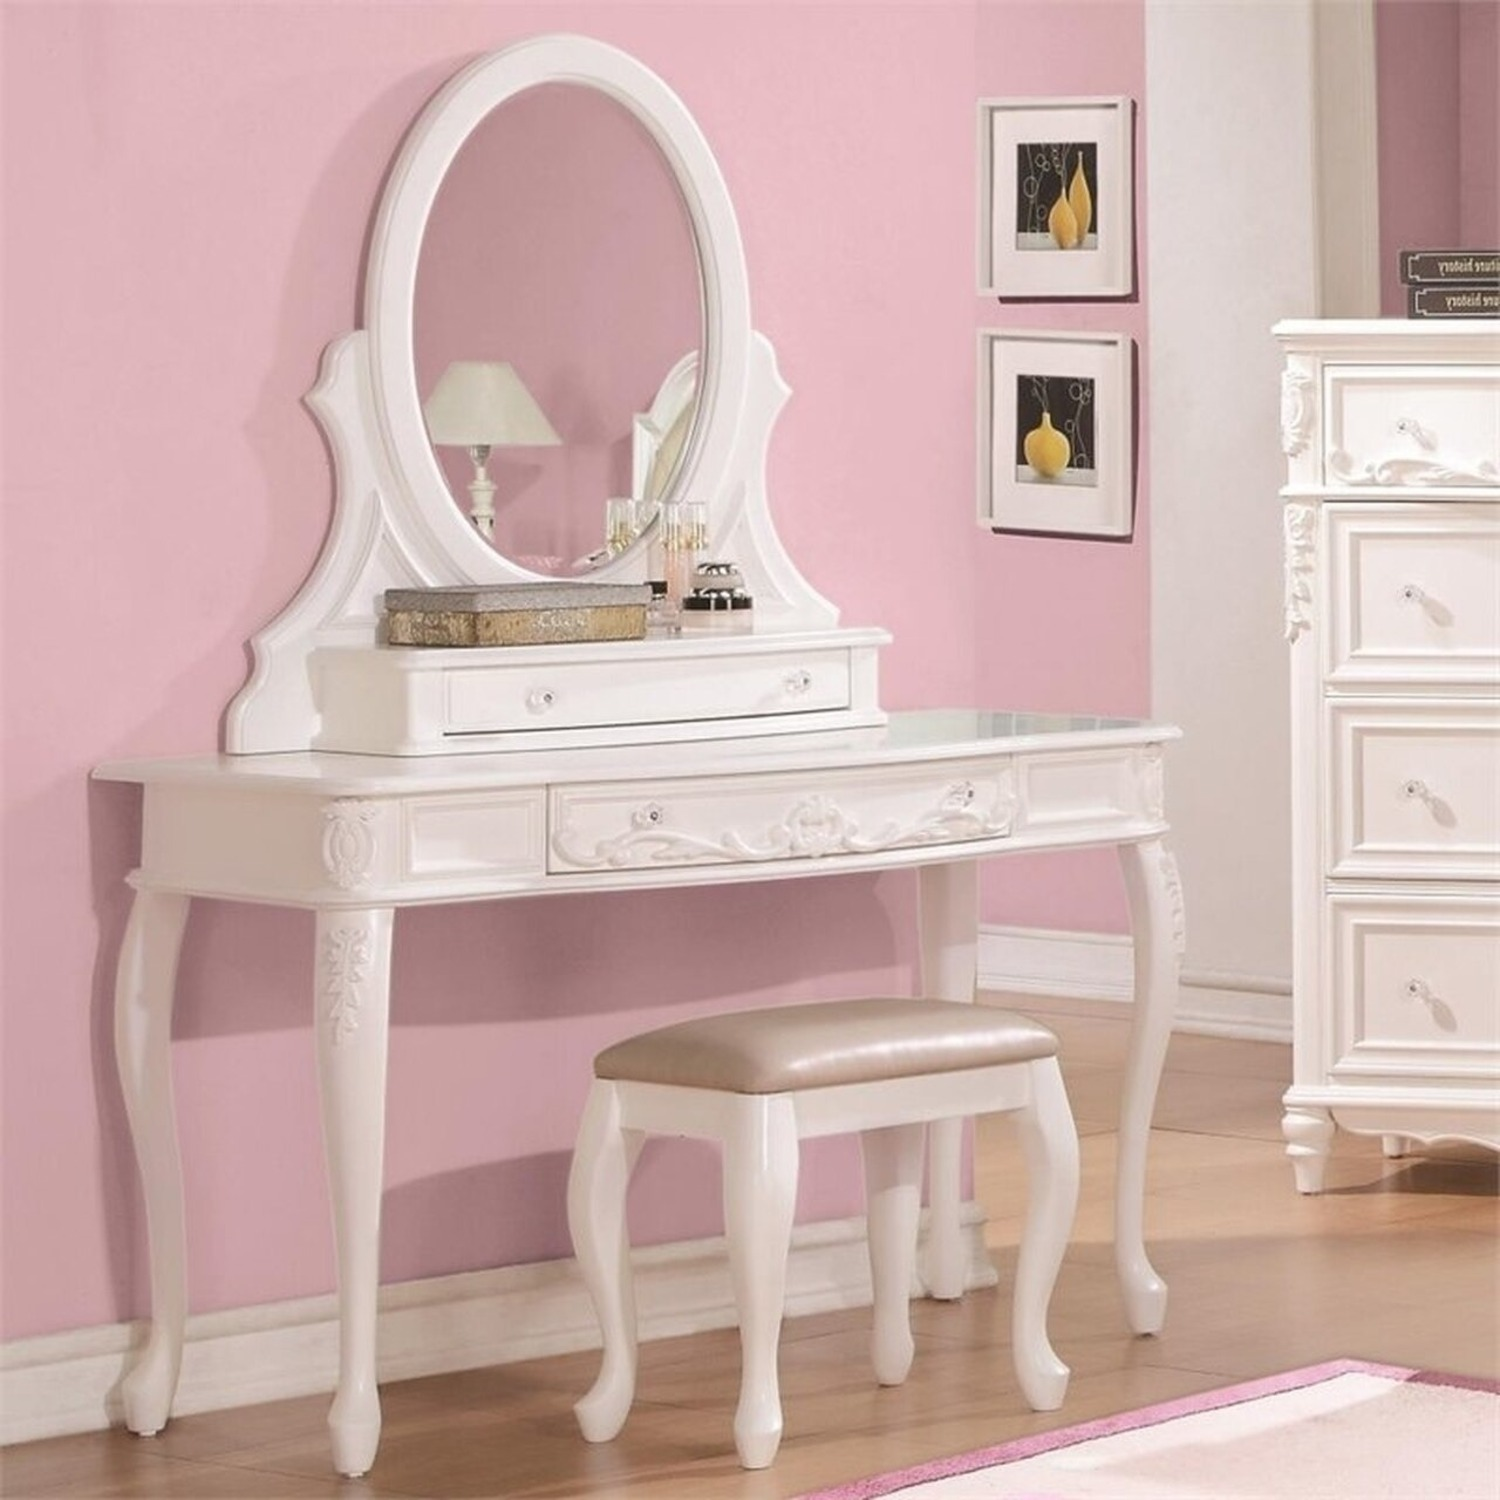 Vanity Desk In White Finish W/ Elegant Details - image-2